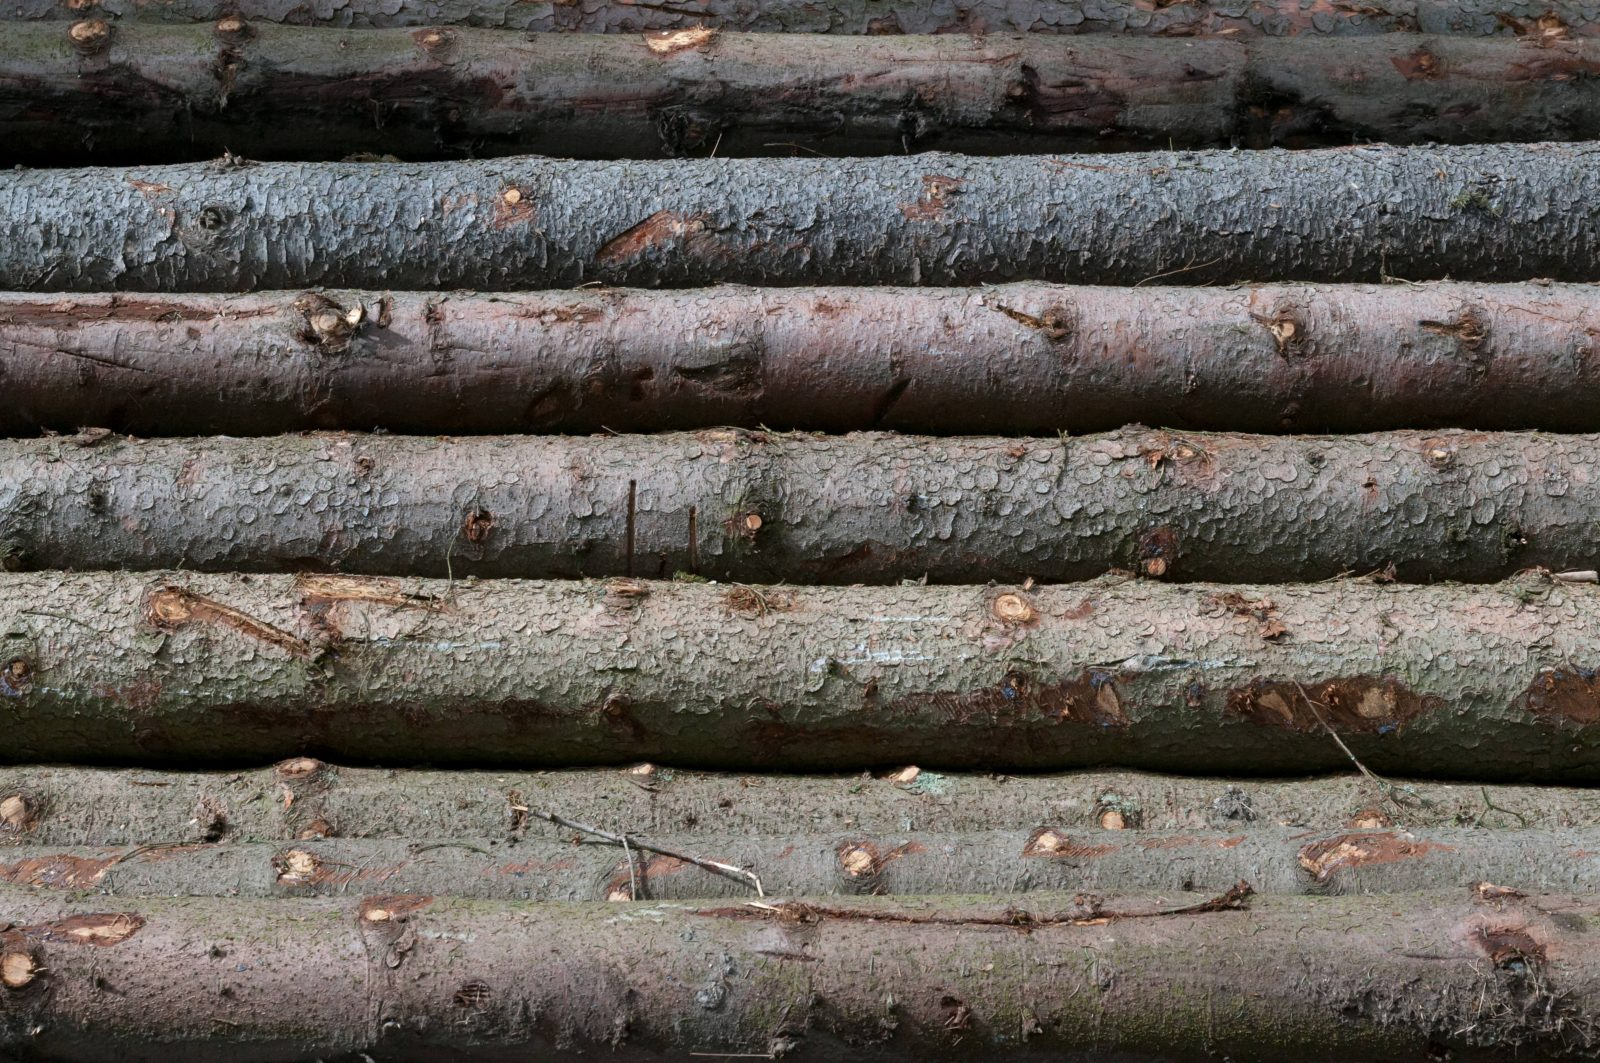 Cut down trees lined up